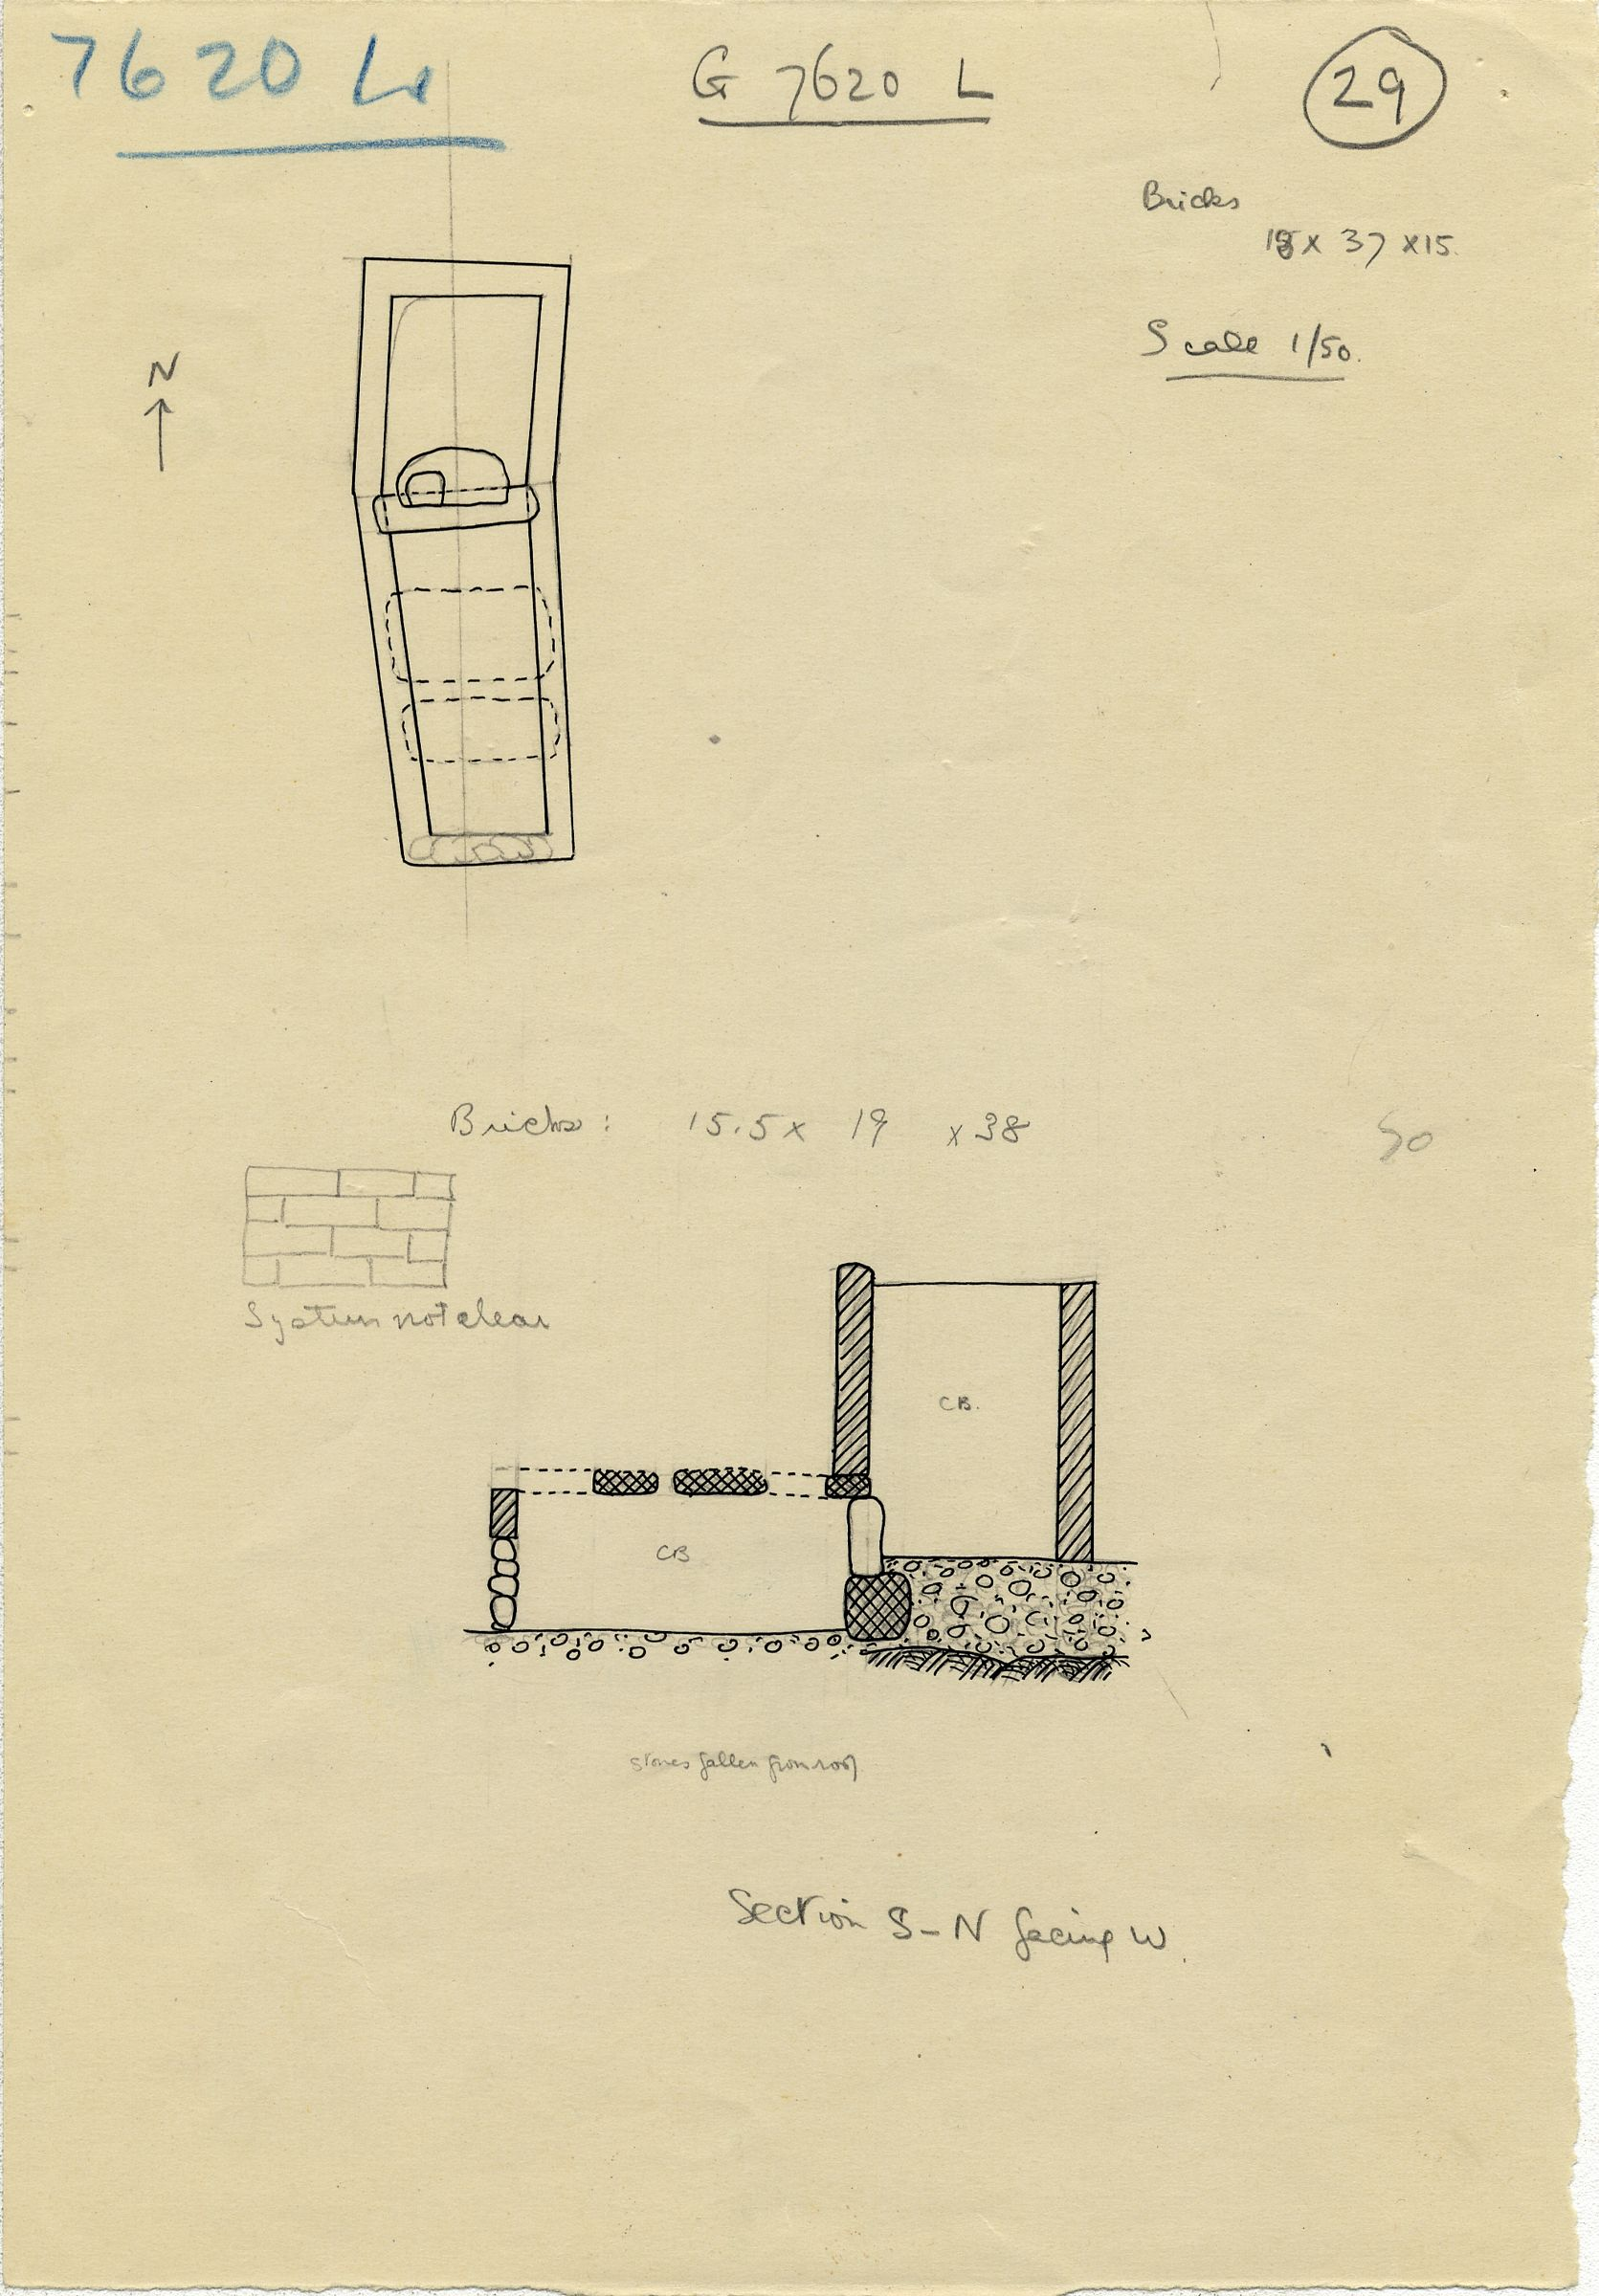 Maps and plans: G 7610+7620: G 7620, Shaft L